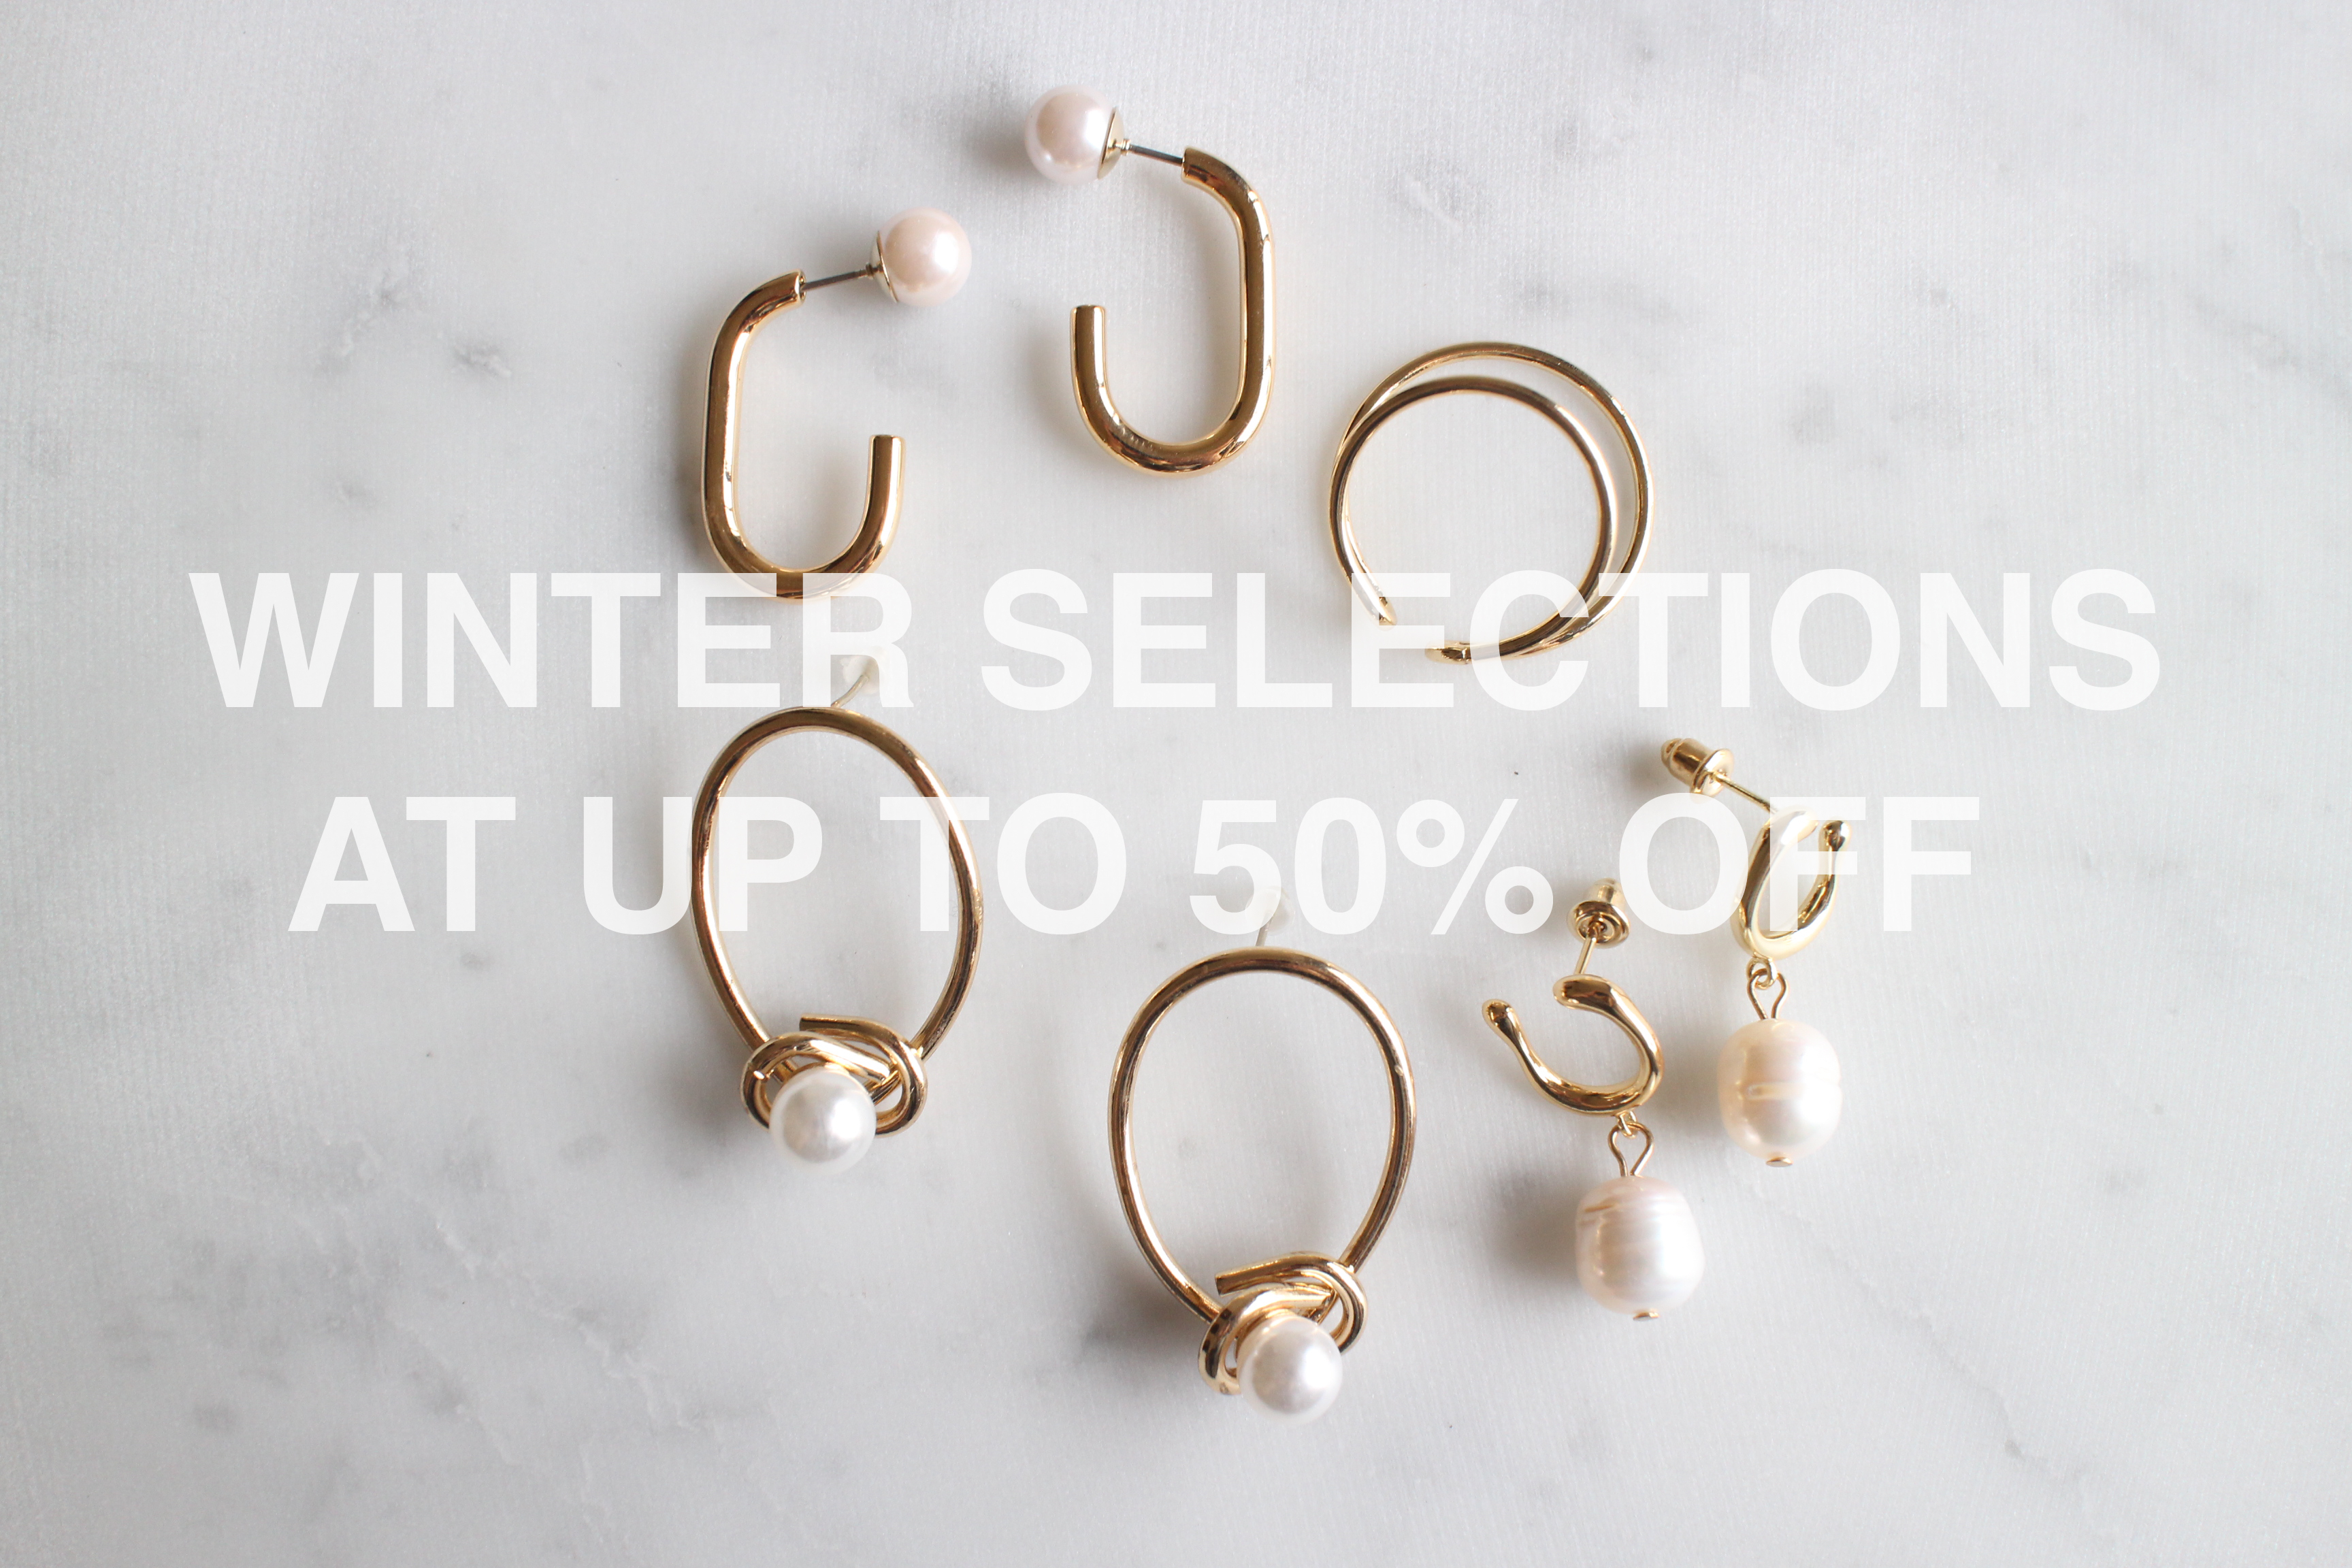 WINTER SELECTIONS AT UP TO 50% OFF